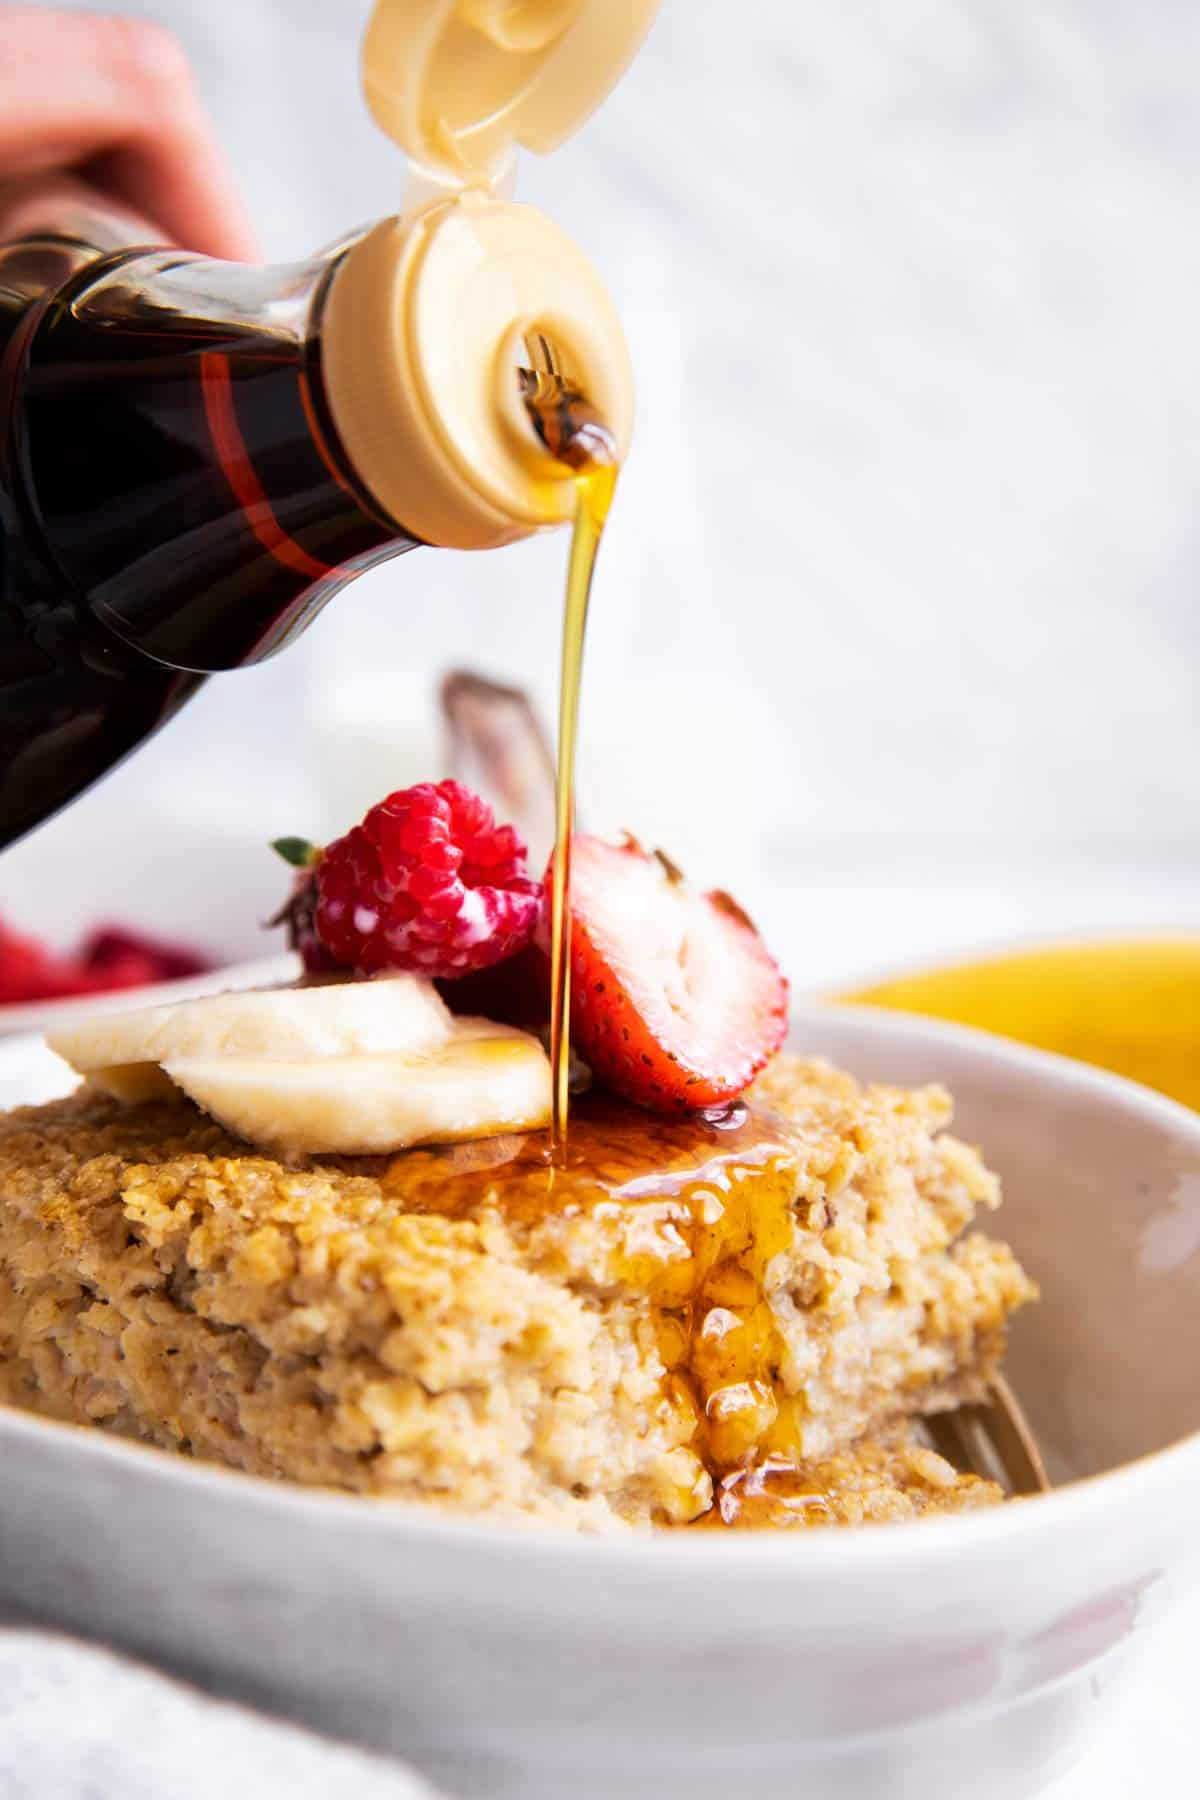 pouring maple syrup over baked oatmeal in a white bowl with fresh fruit